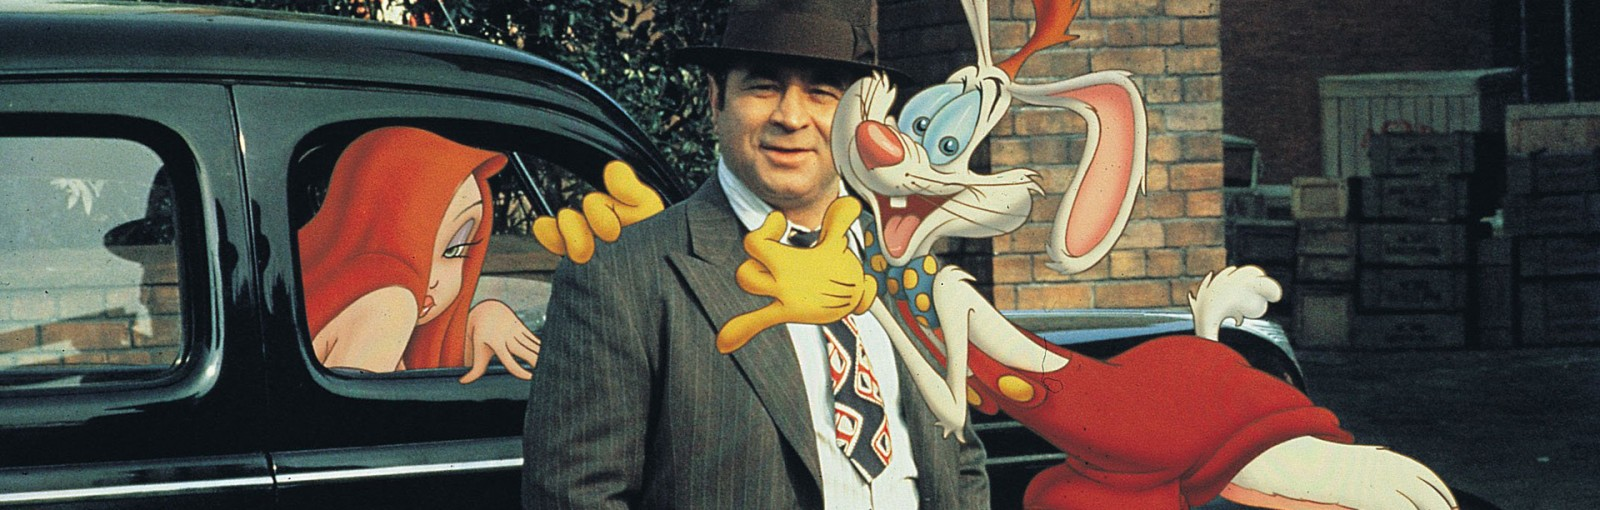 Screening of Who Framed Roger Rabbit? (1988) | Autry Museum of the ...